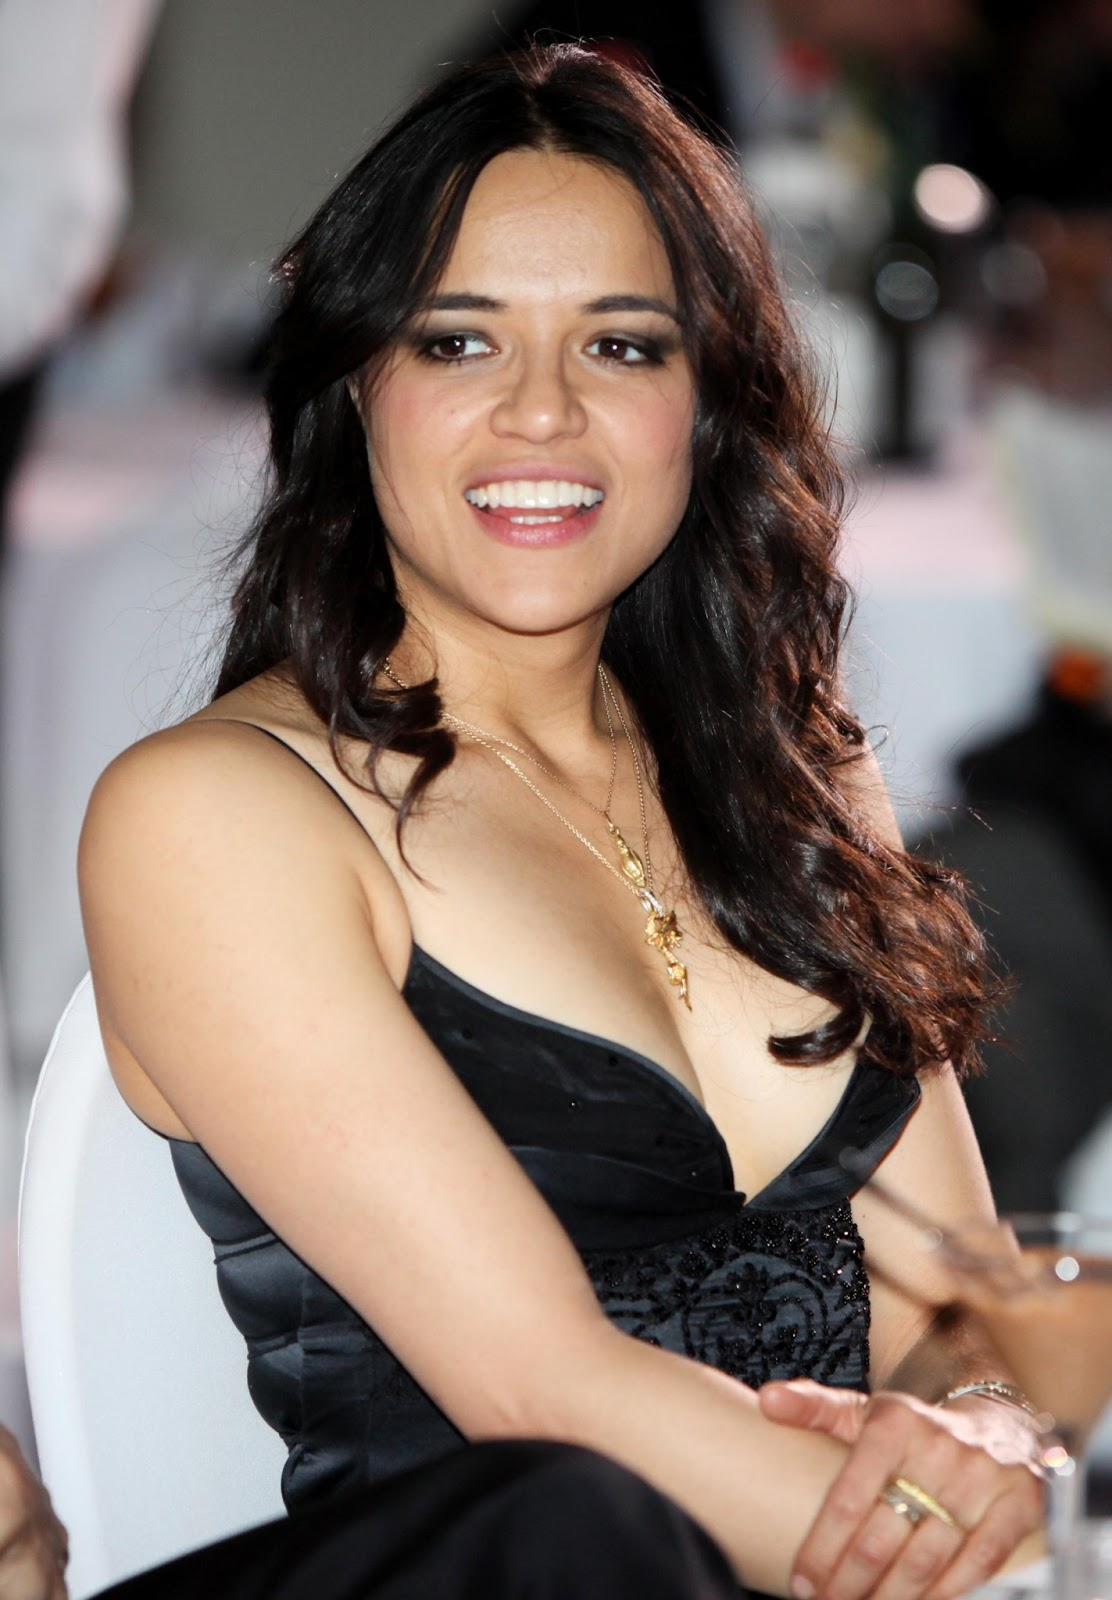 Michelle Rodriguez hot hd wallpapers - HIGH RESOLUTION